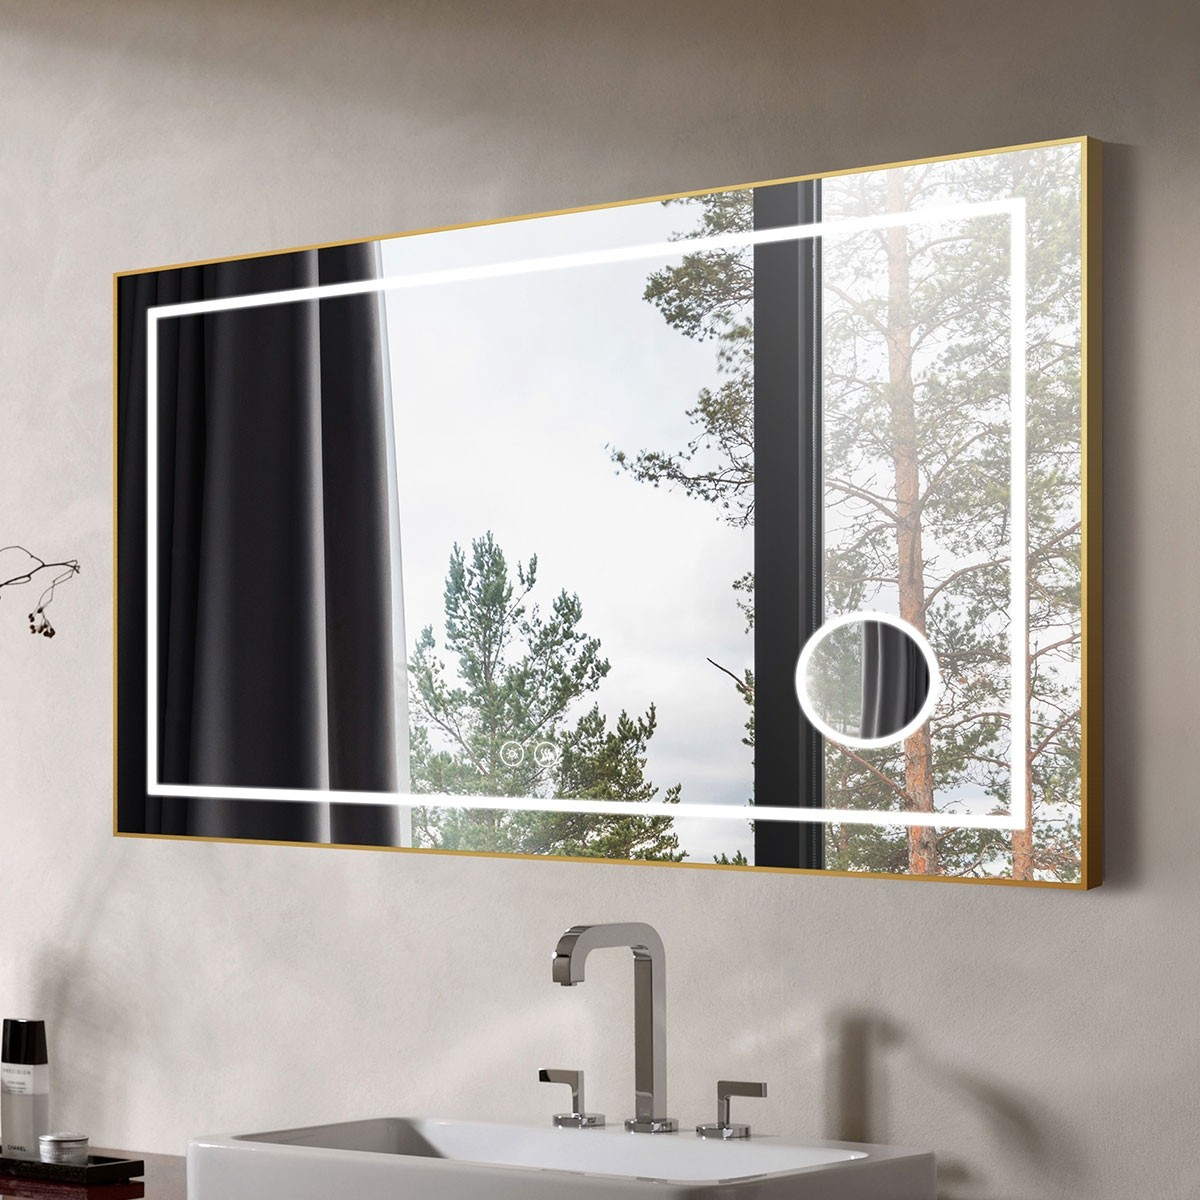 DECORAPORT 55 x 36 Inch LED Bathroom Mirror with Touch Button, Light Luxury Gold, Anti Fog, Dimmable, Bluetooth Speakers,Magnifier, Horizontal Mount (D721-5536AC)